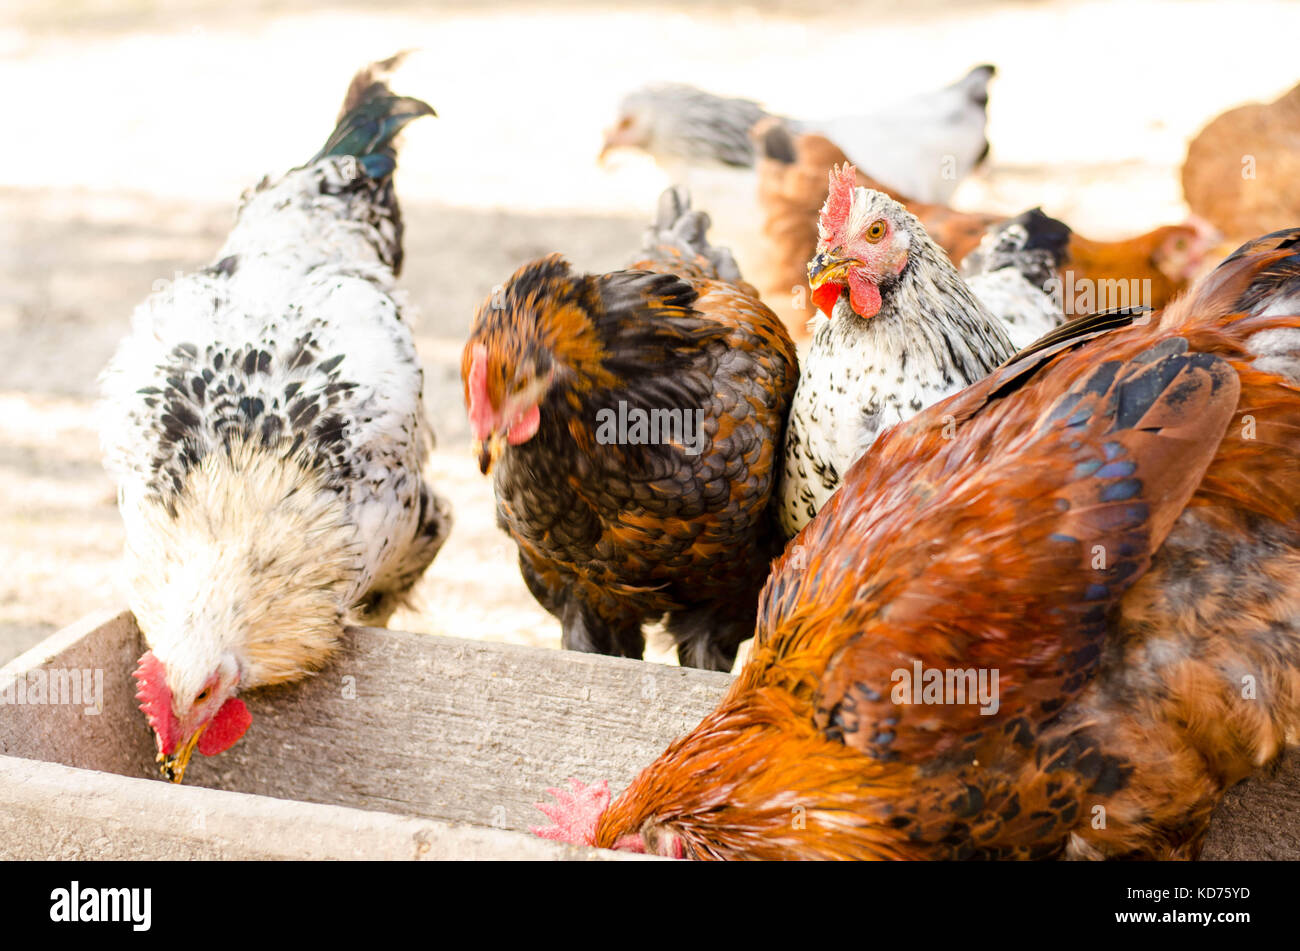 brown chicken eating from a trough. Stock Photo